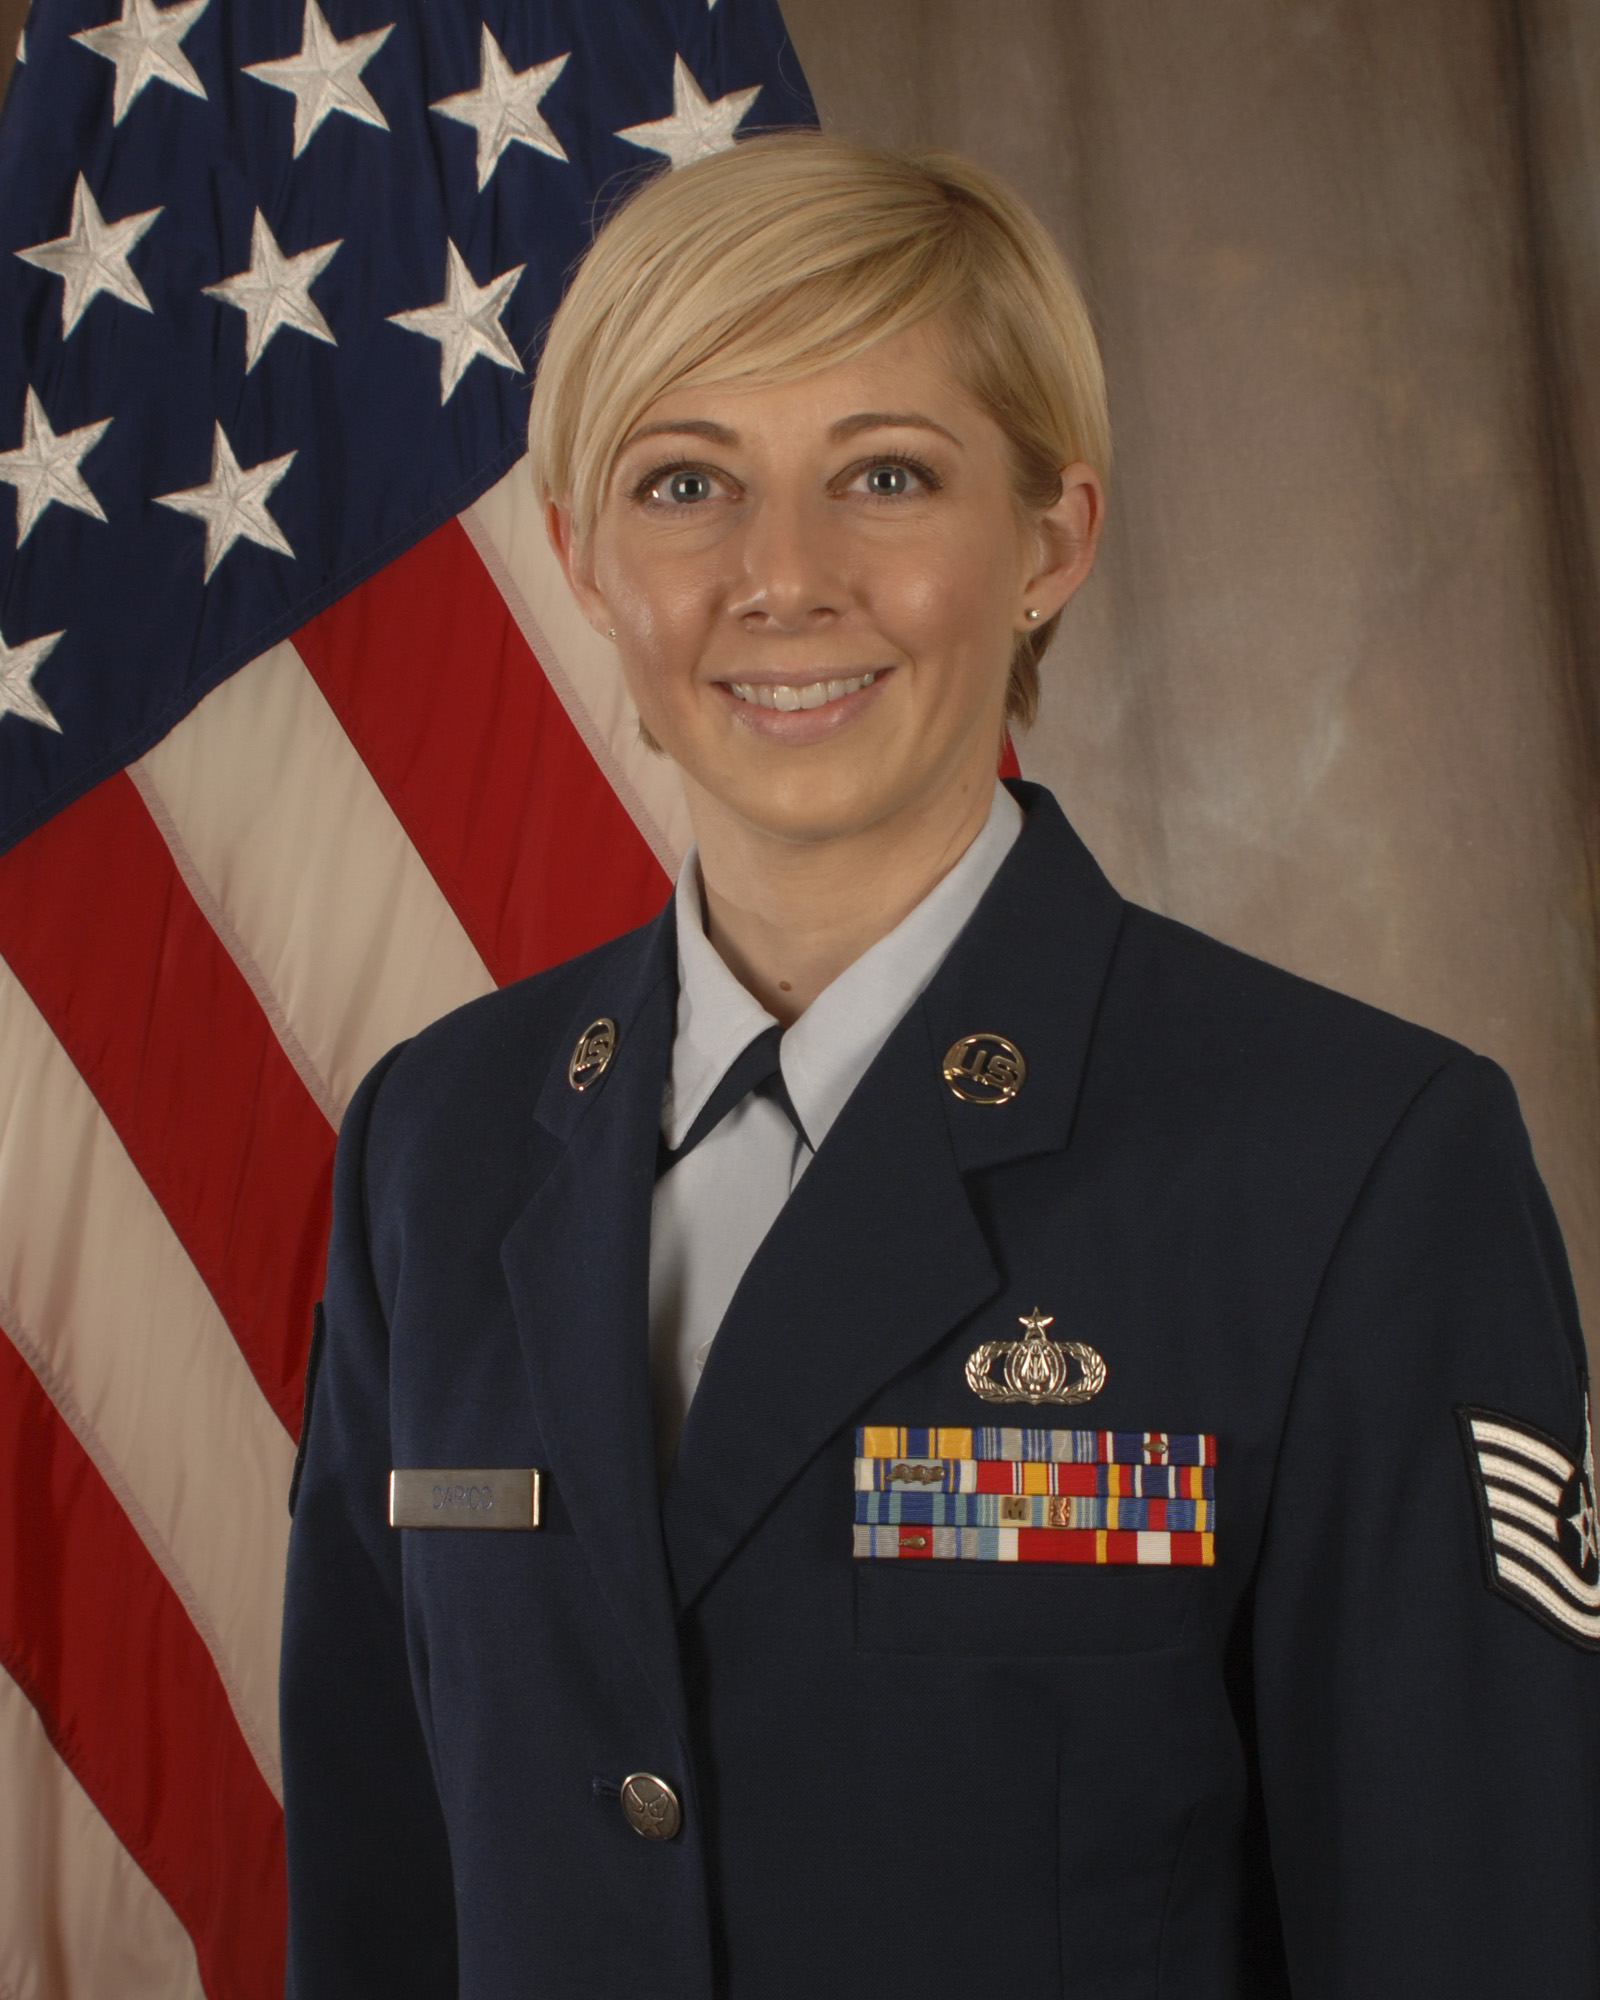 Technical Sergeant Traci Carico, First Sergeant of the Air National Guard Band of the South